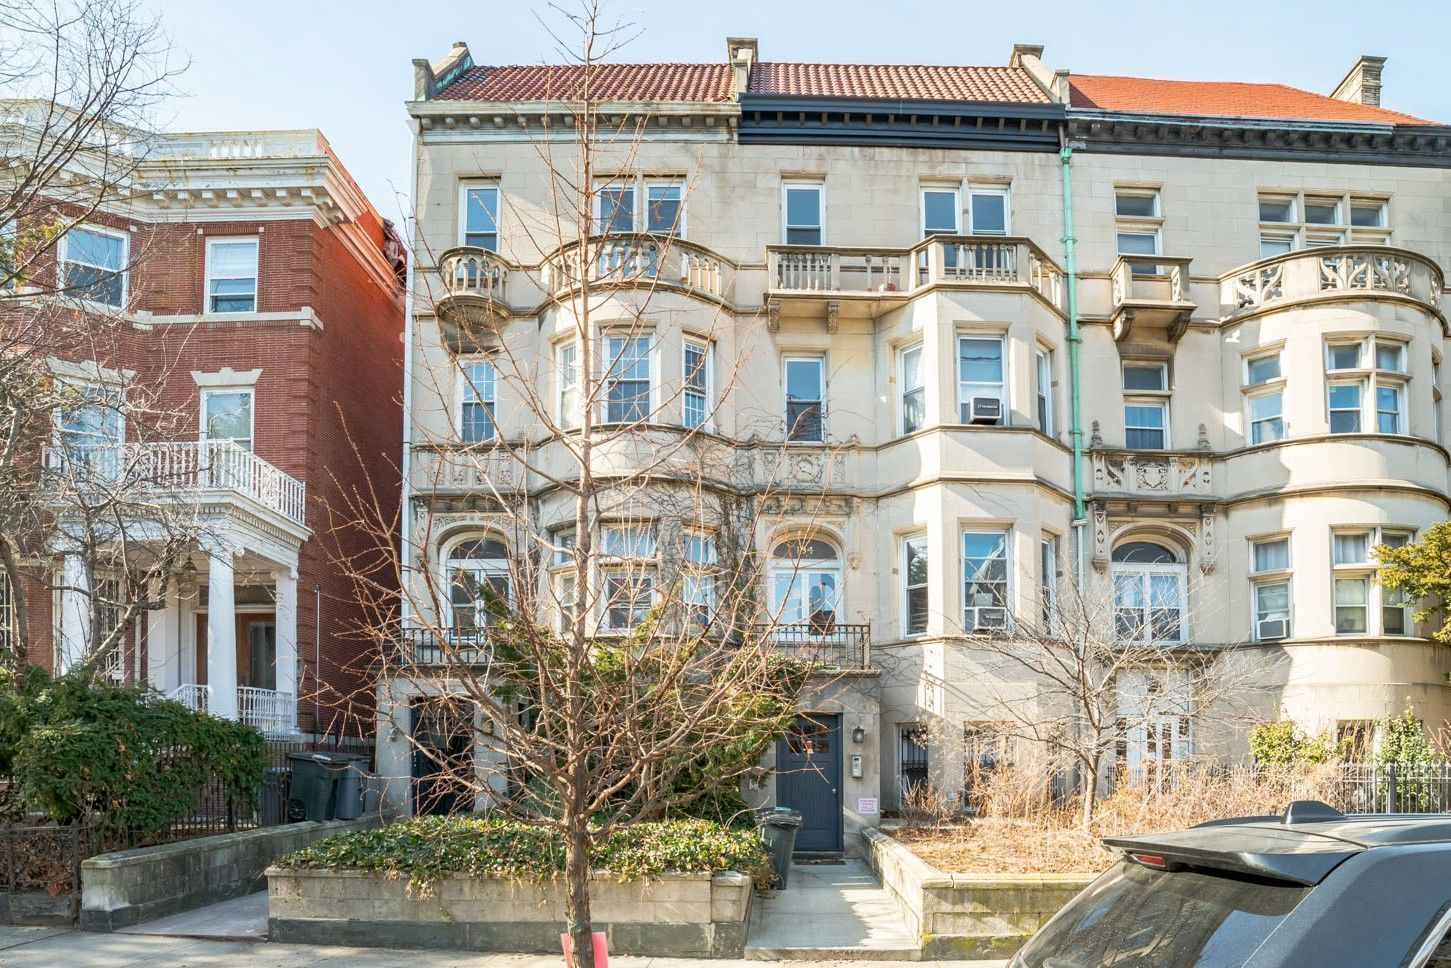 Big Bold Vacant 5 Unit Semi-Attached Limestone In Prime Crown Heights Photo 2 - BROWNSTONER-LISTING-97a538bd42ede9f4edc2fc244def62e3